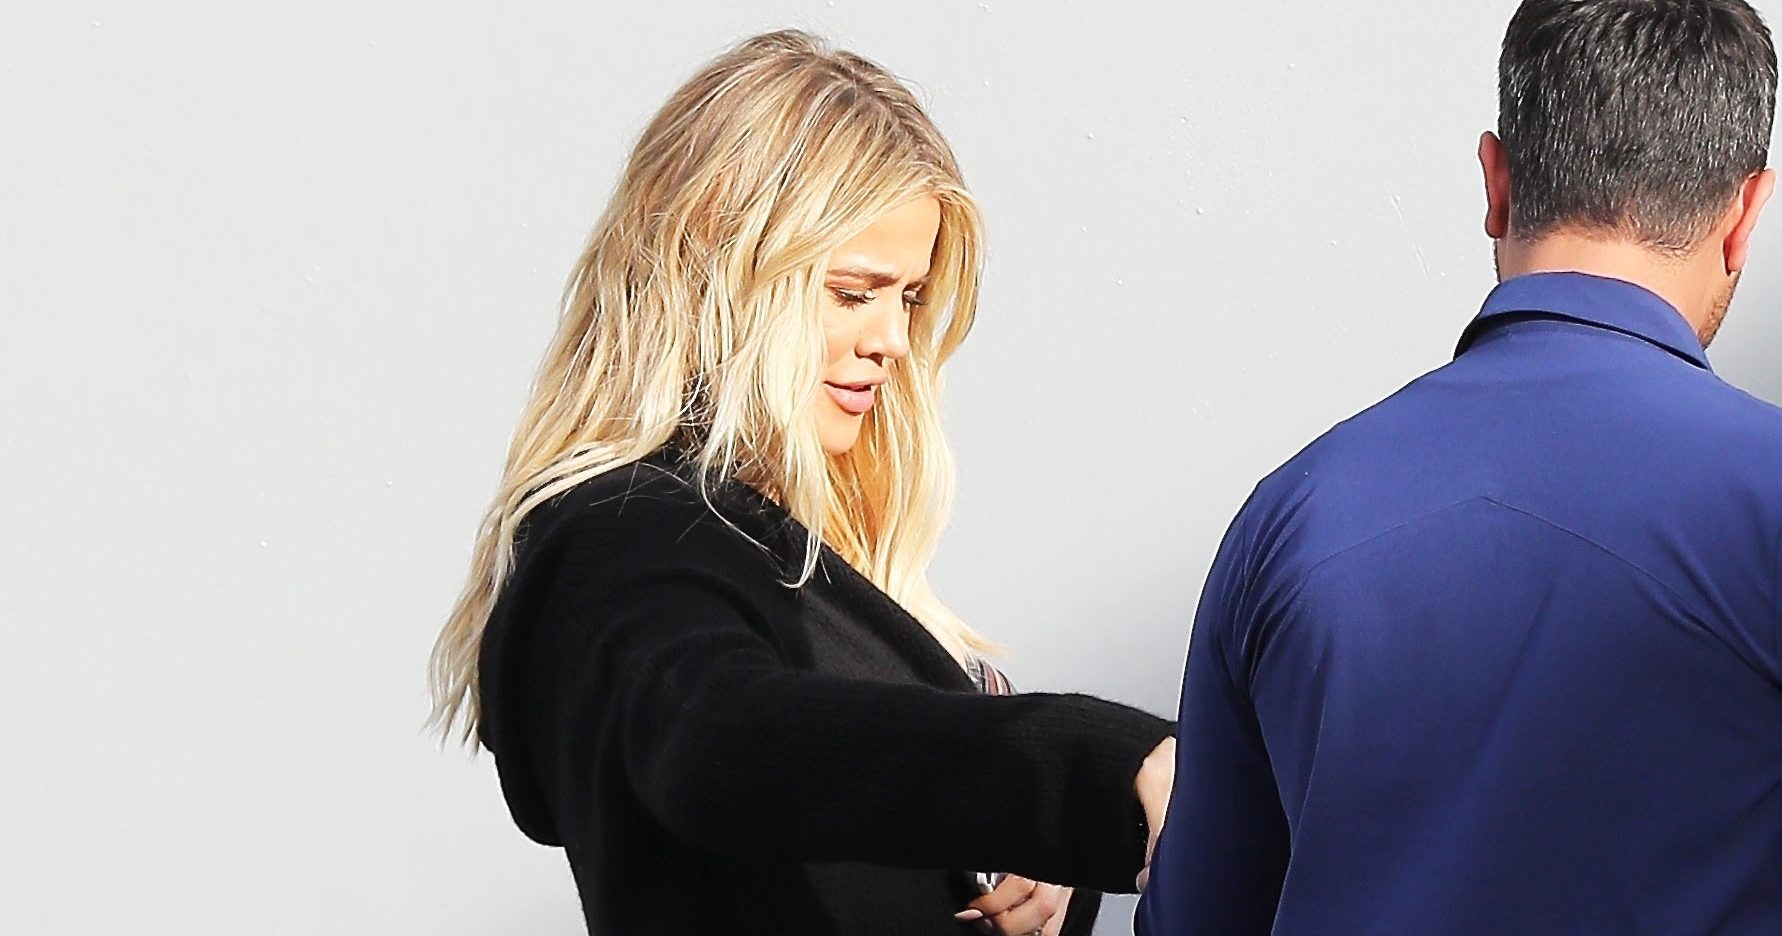 Pregnant Khloe Kardashian Covers Baby Bump in All Black